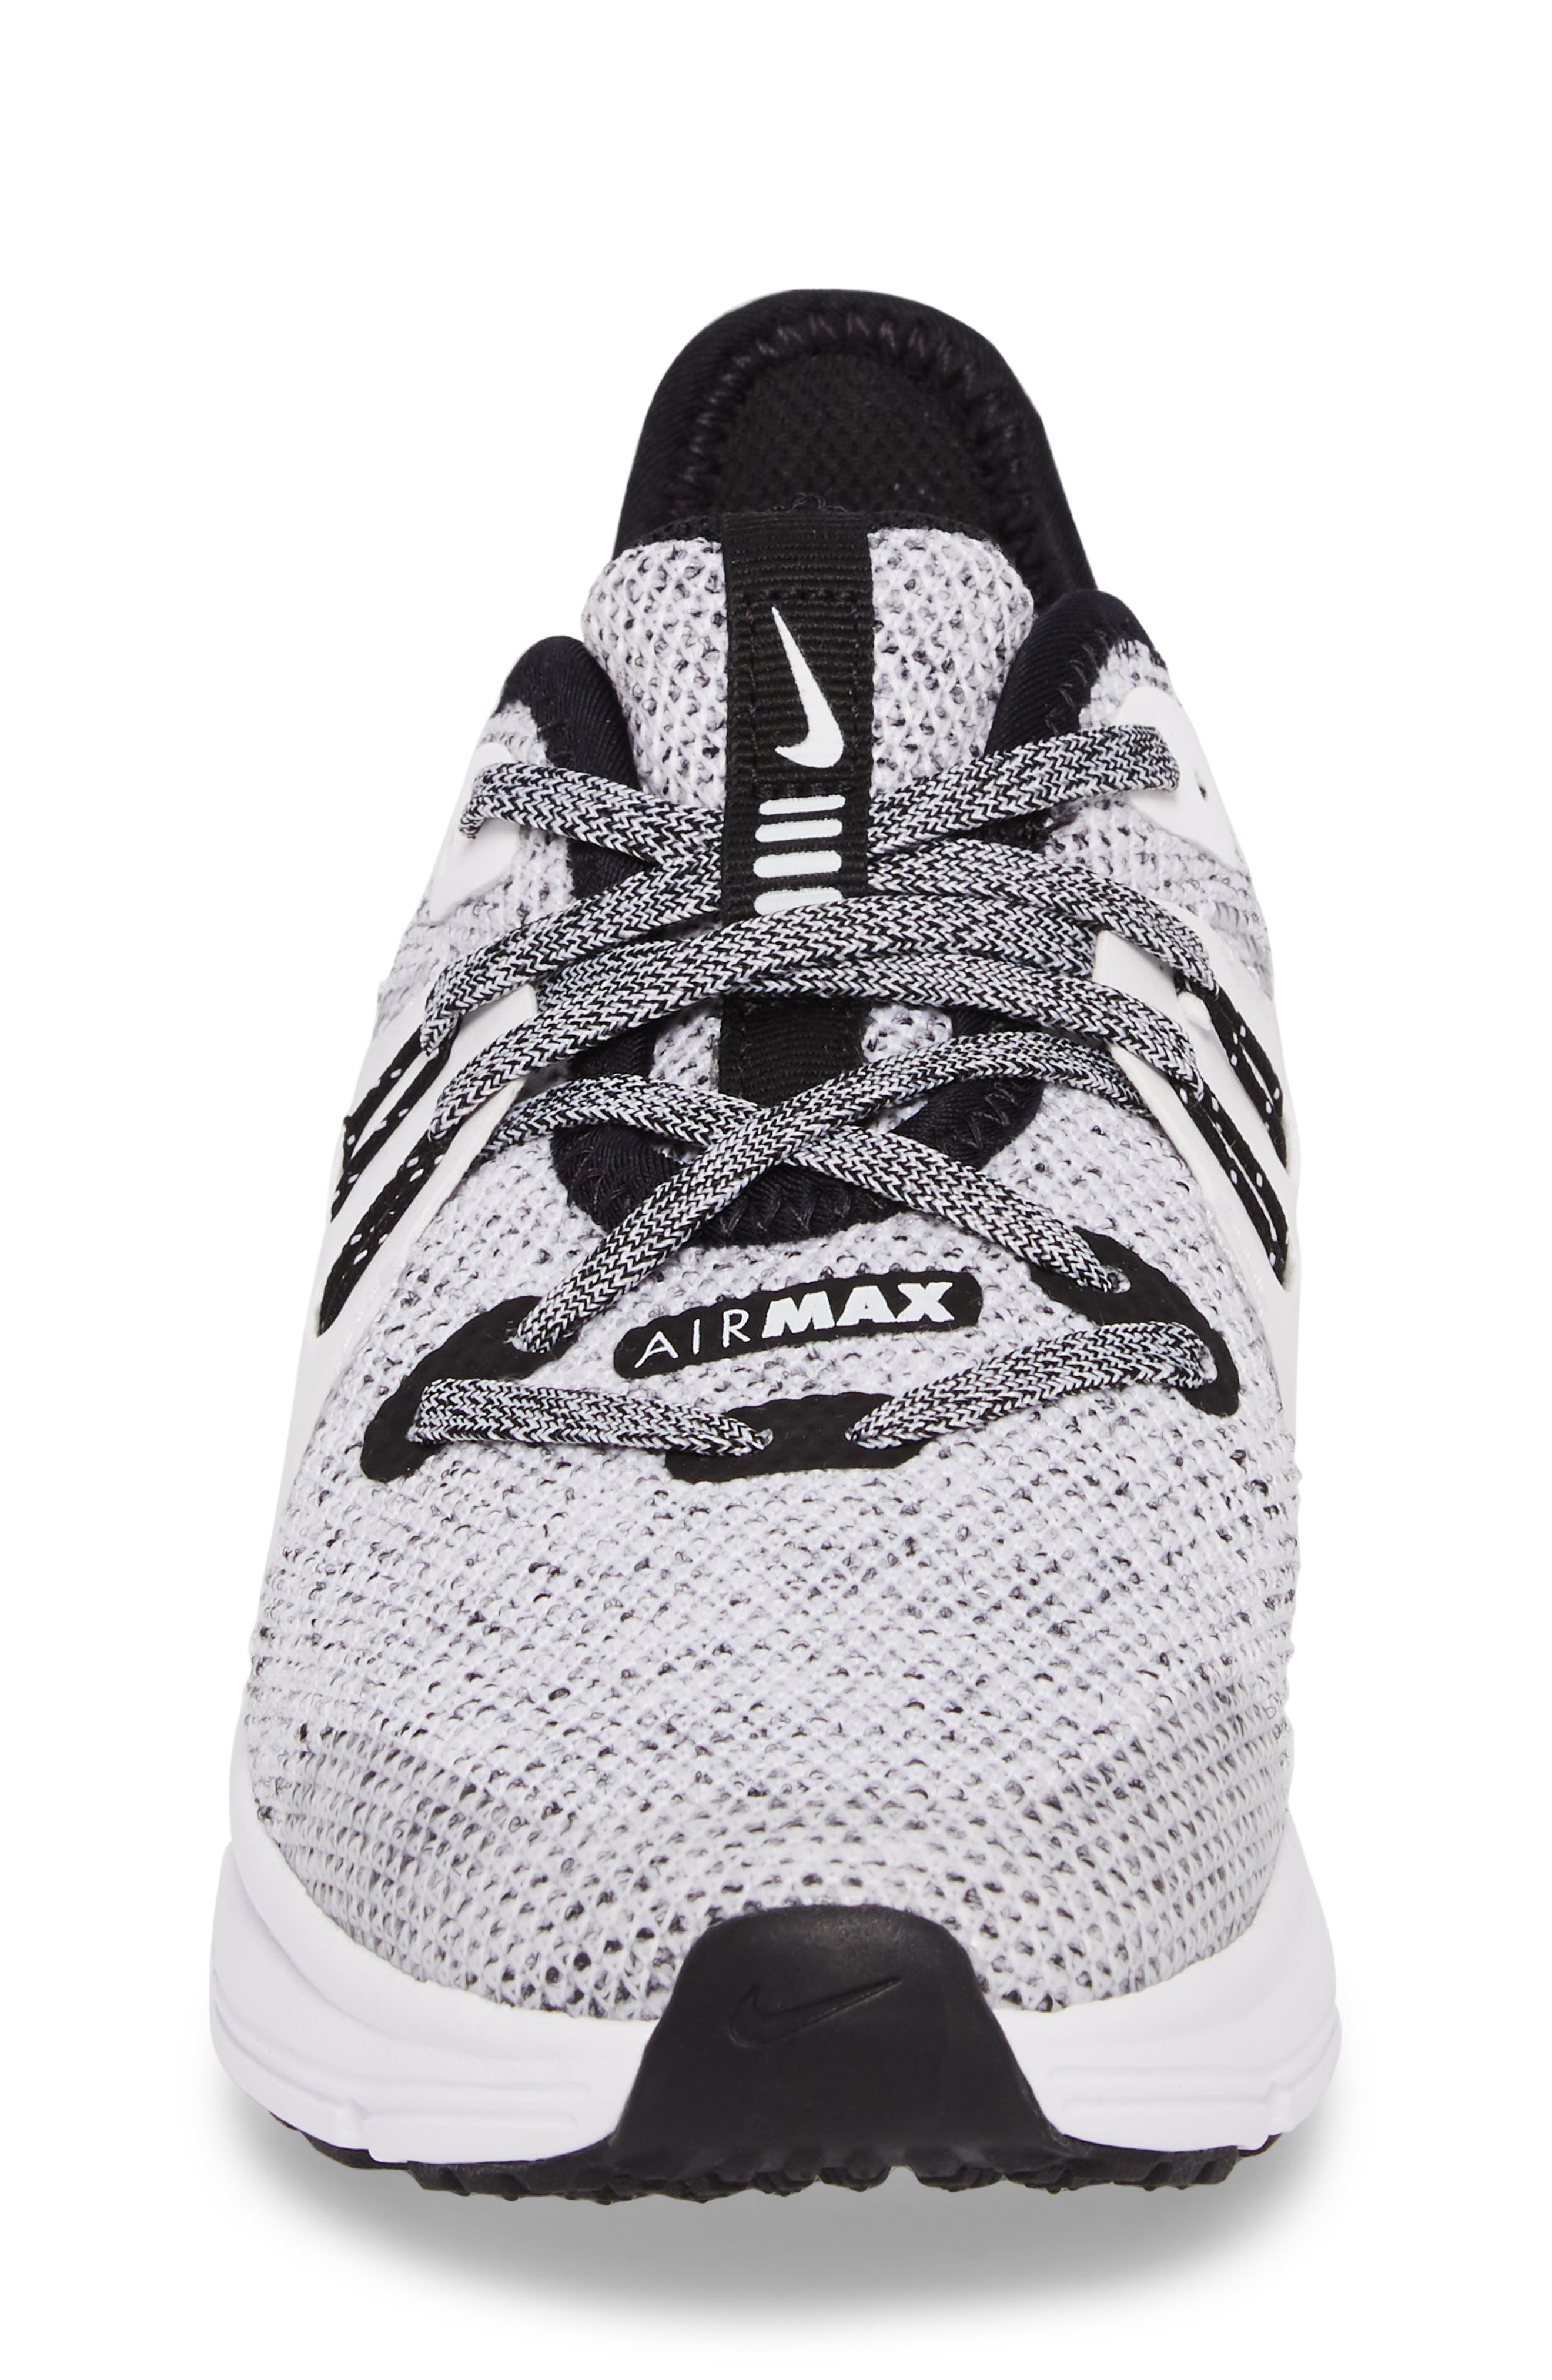 Air Max Sequent 3 GS Running Shoe,                             Alternate thumbnail 4, color,                             BLACK/ WHITE/ METALLIC GOLD